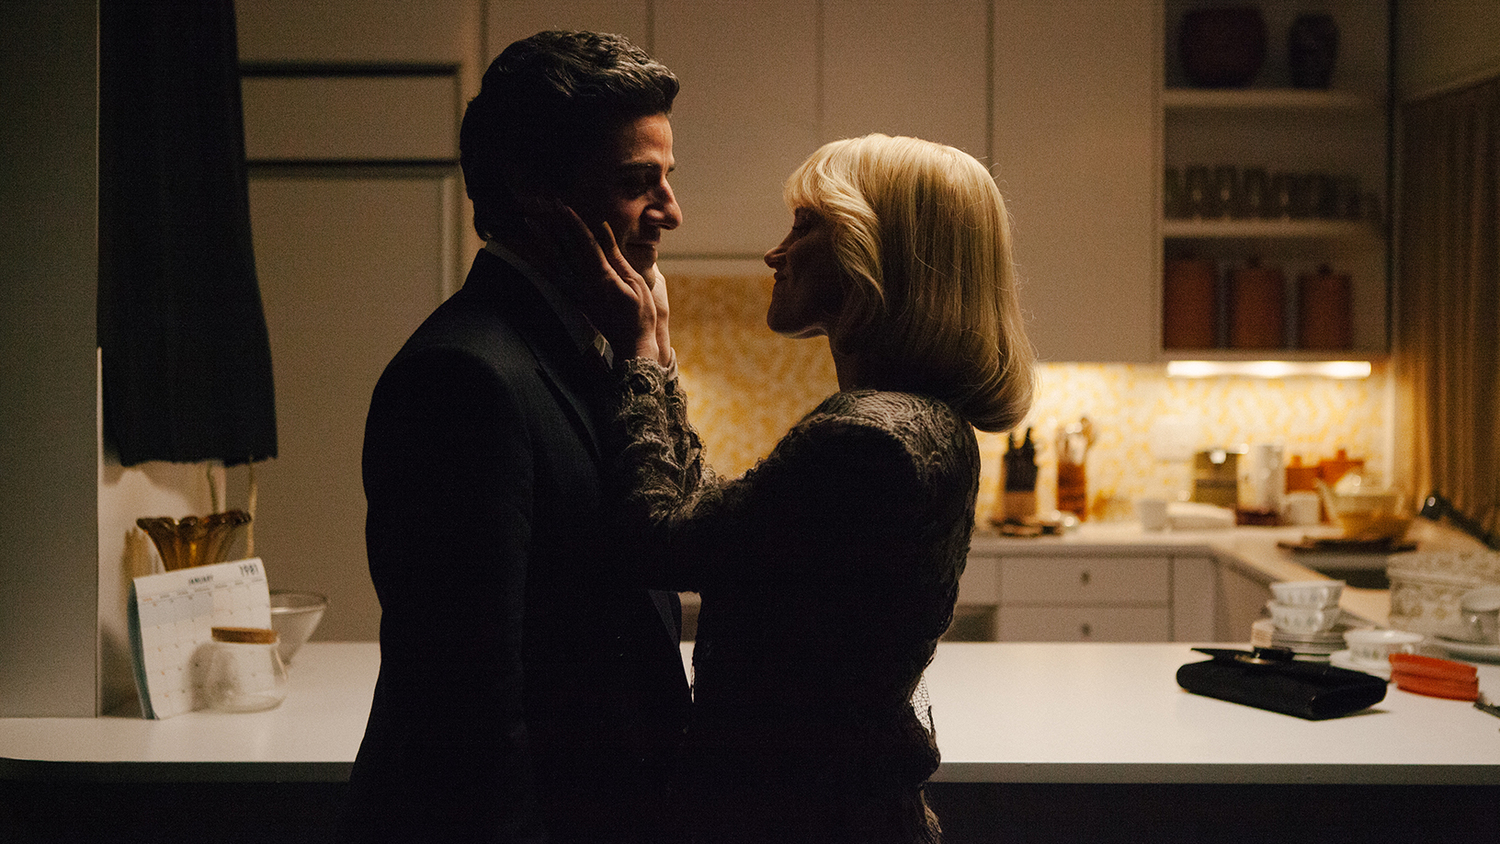 Oscar Isaac and Jessica Chastain in A Most Violent Year